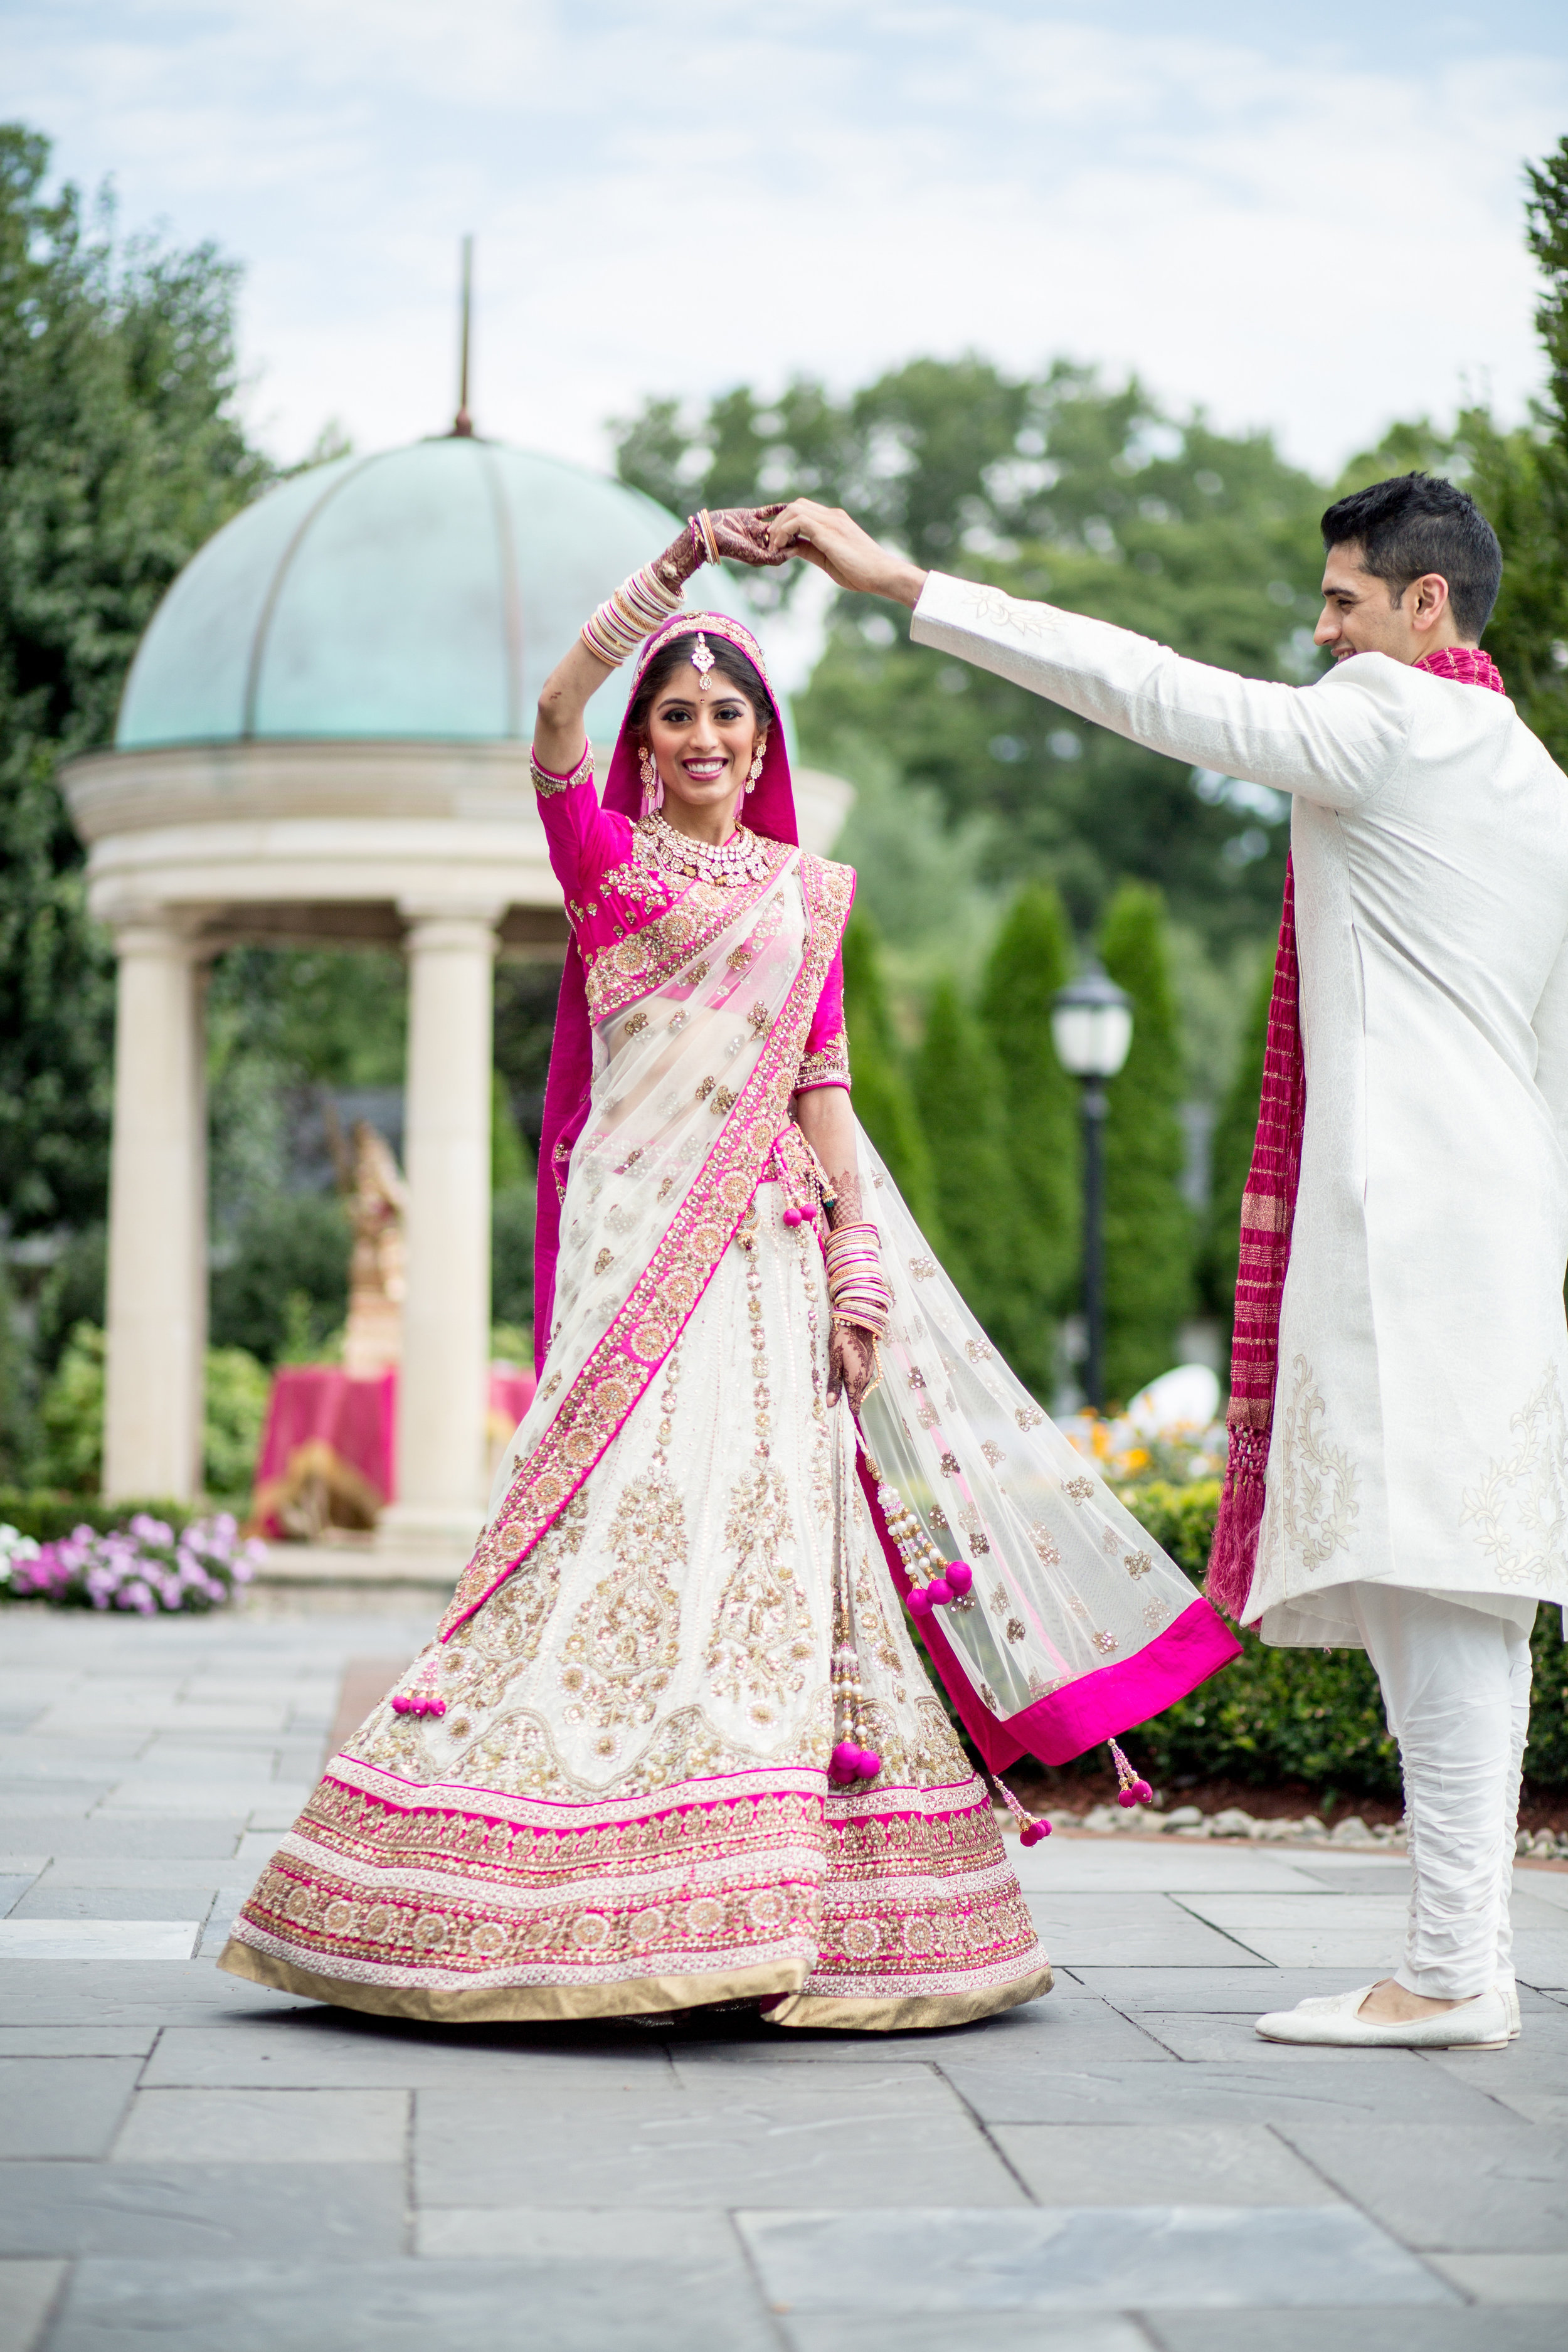 Indian couple twirling